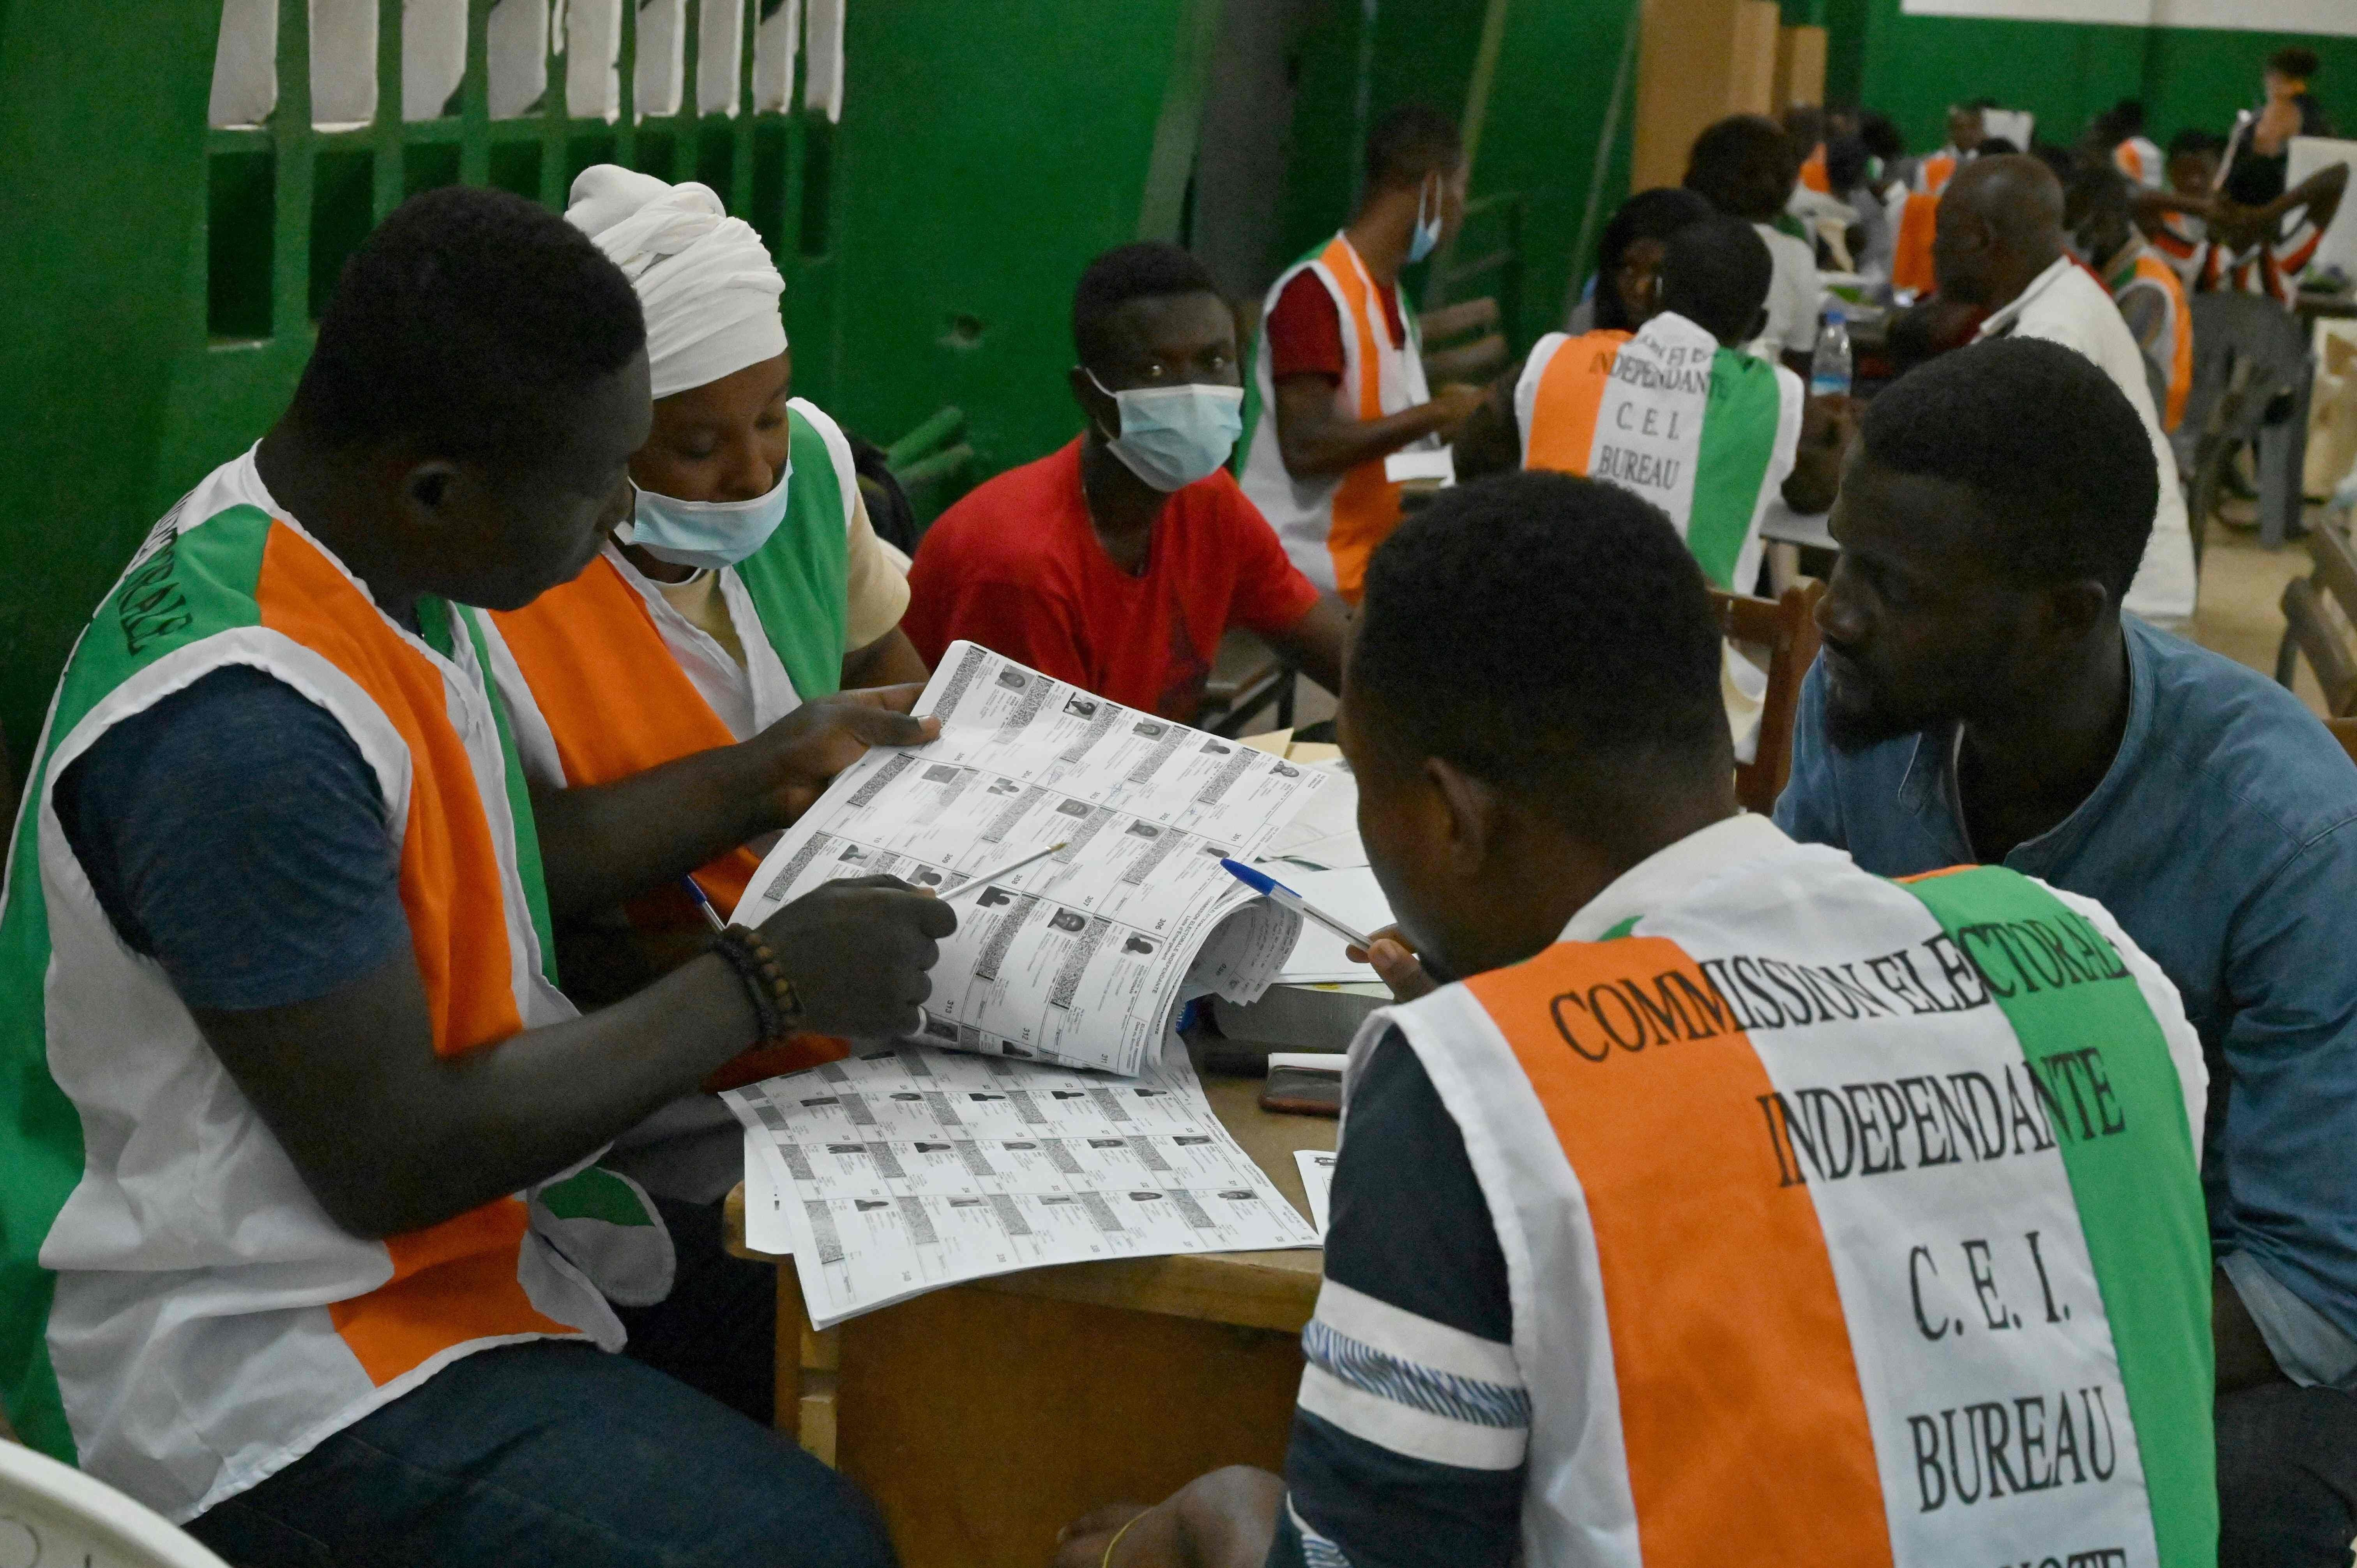 Electoral commission officials check the voter's roll as they count votes for Ivory Coast's presidential election at a polling station in Abidjan, Ivory Coast, Oct. 31, 2020. (AFP Photo)